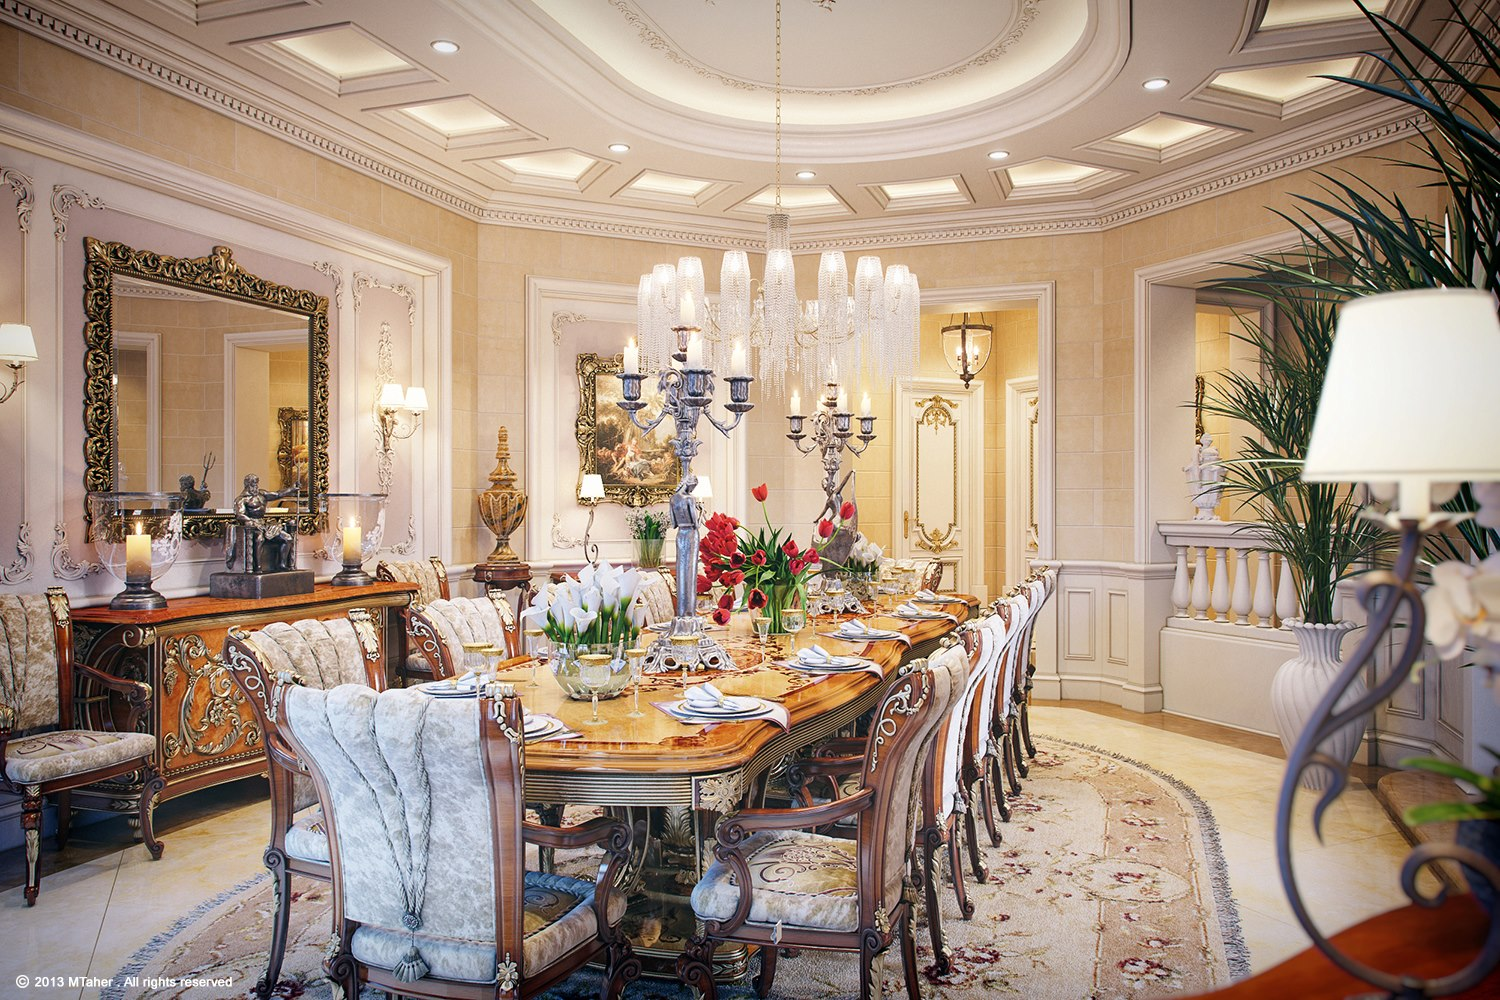 Luxury villa dining room 3 interior design ideas for Interior decoration of dining room